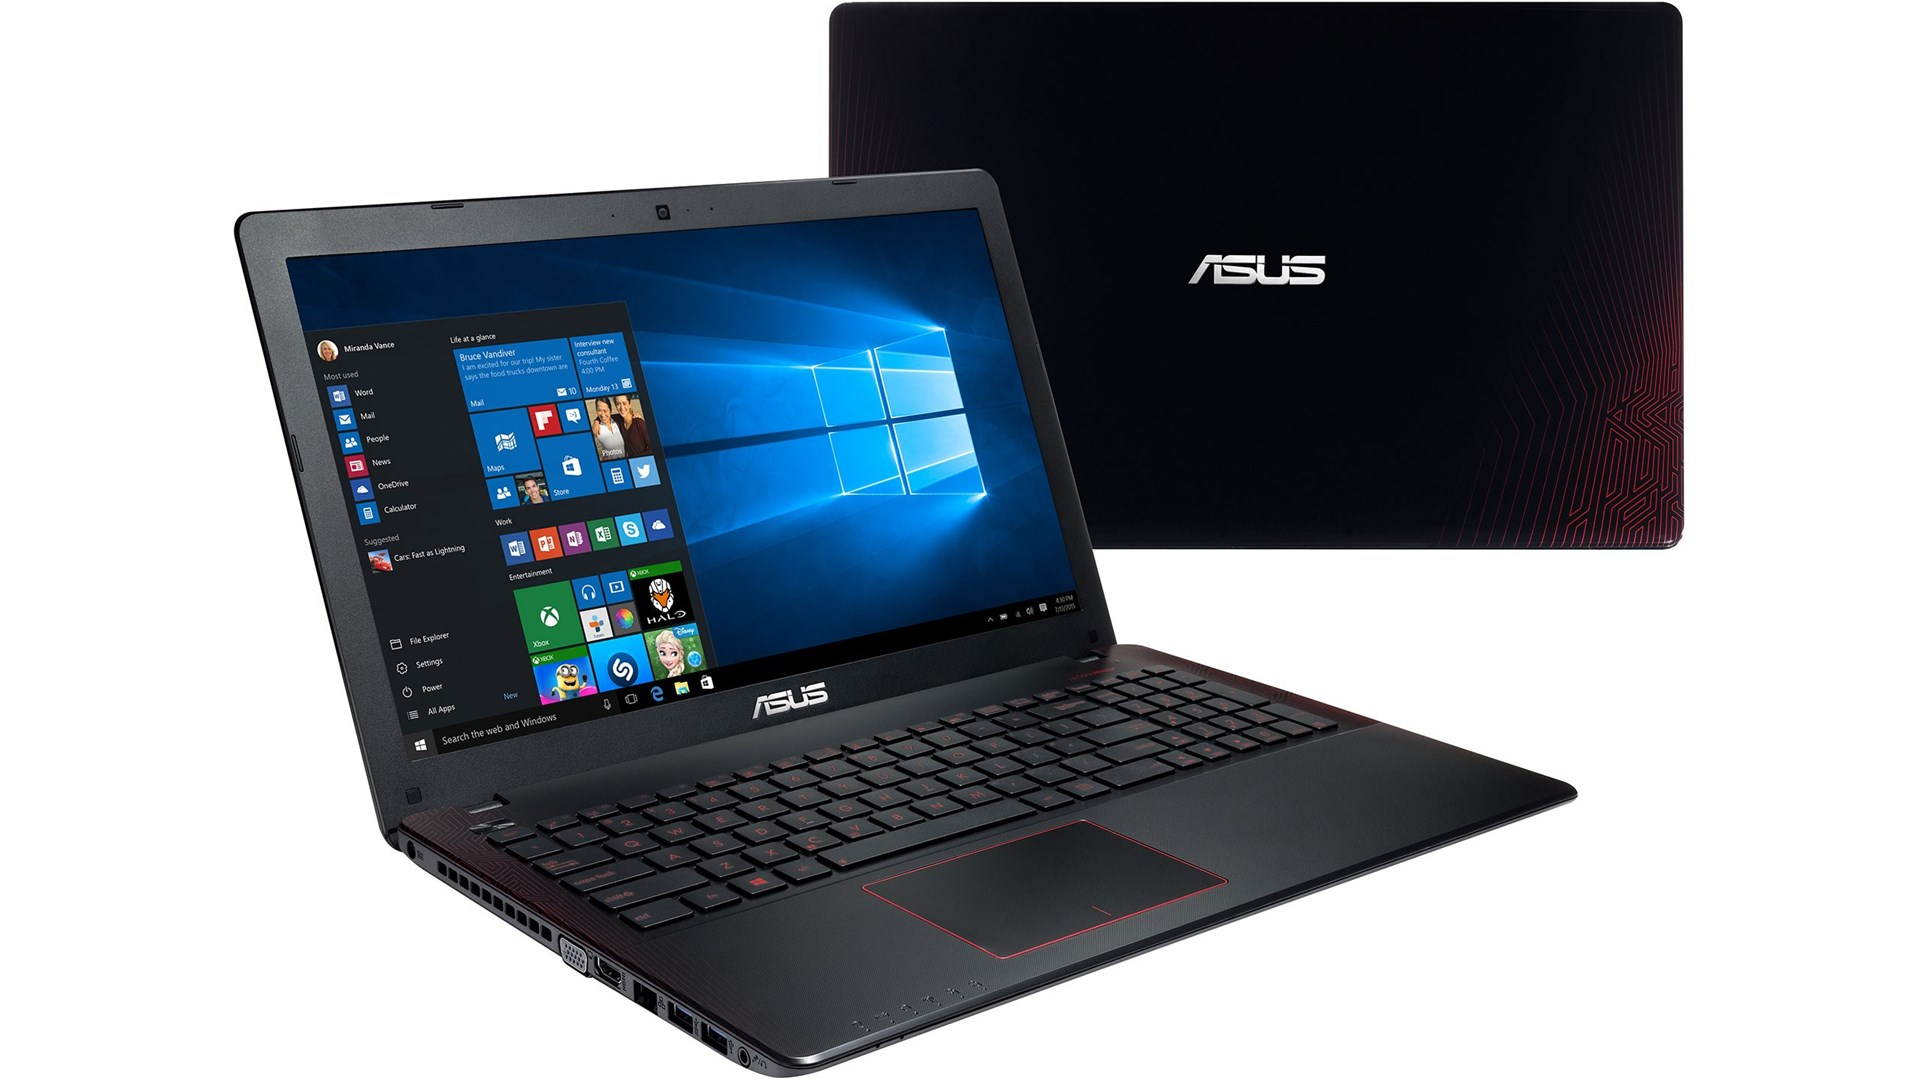 Jual ASUS X550IU AMD FX 9830 RAM 8GB Graphics AMD RX 460